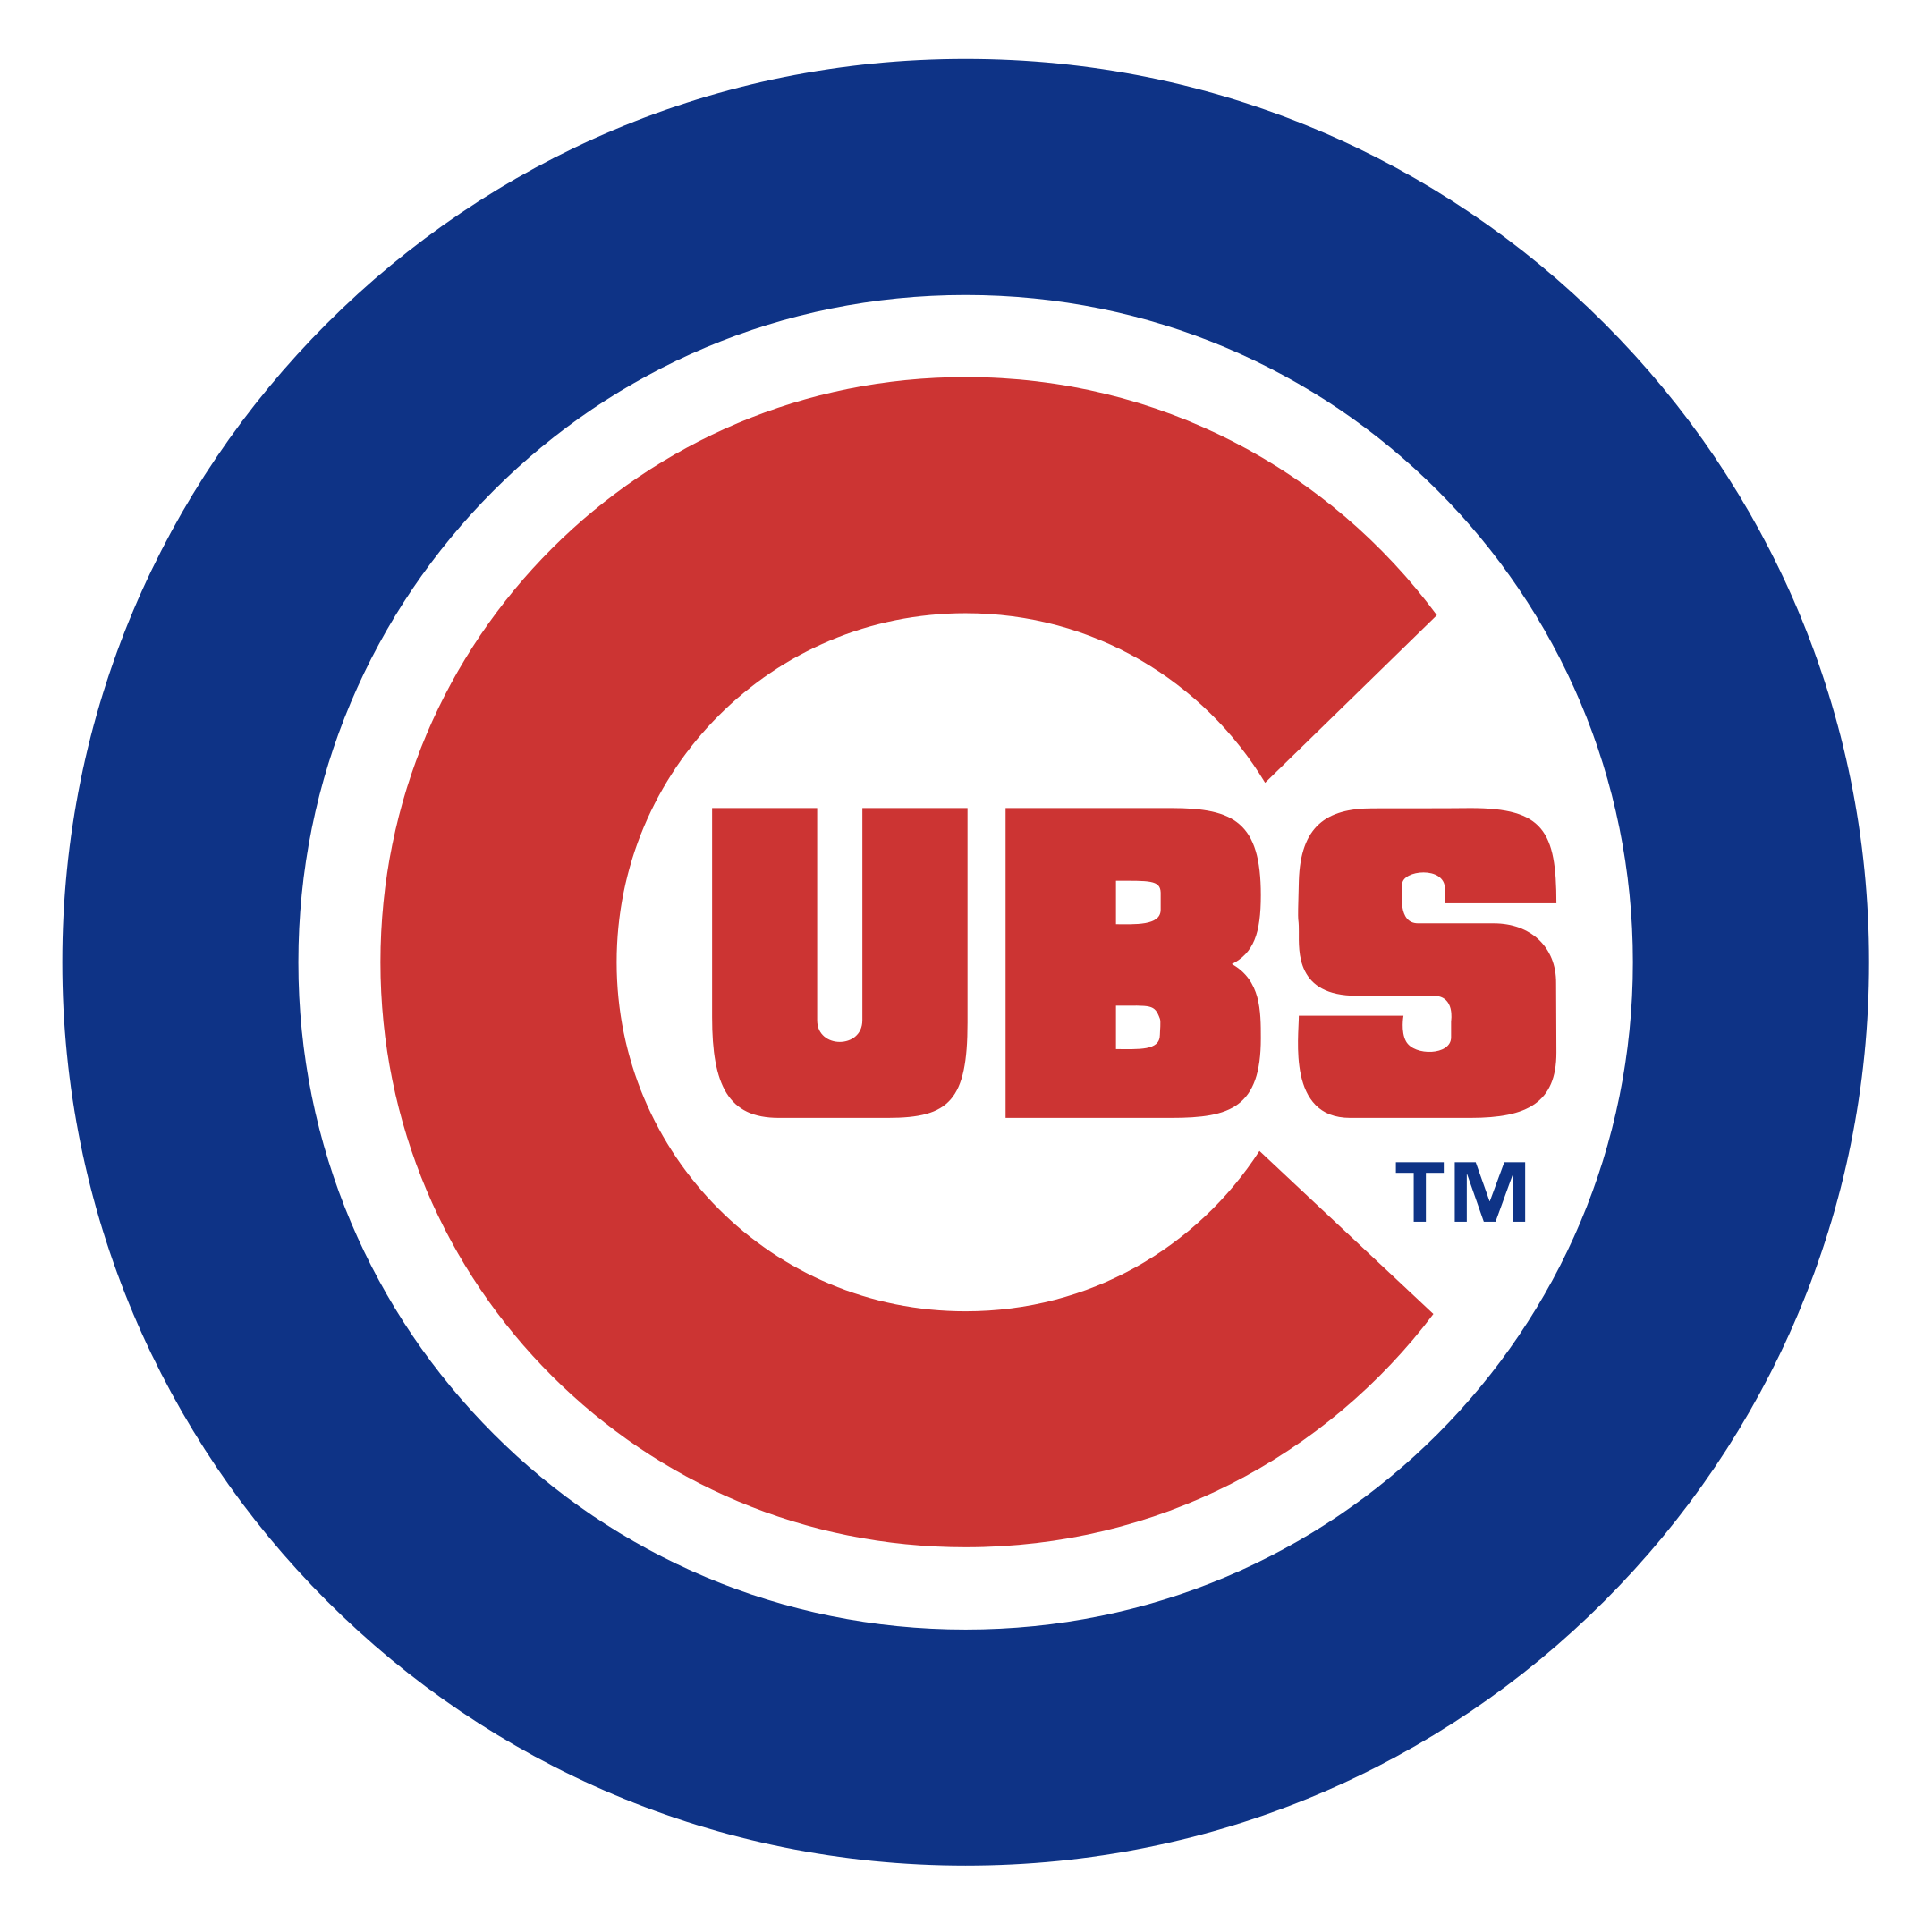 chicago cubs logo 1 - Chicago Cubs Logo